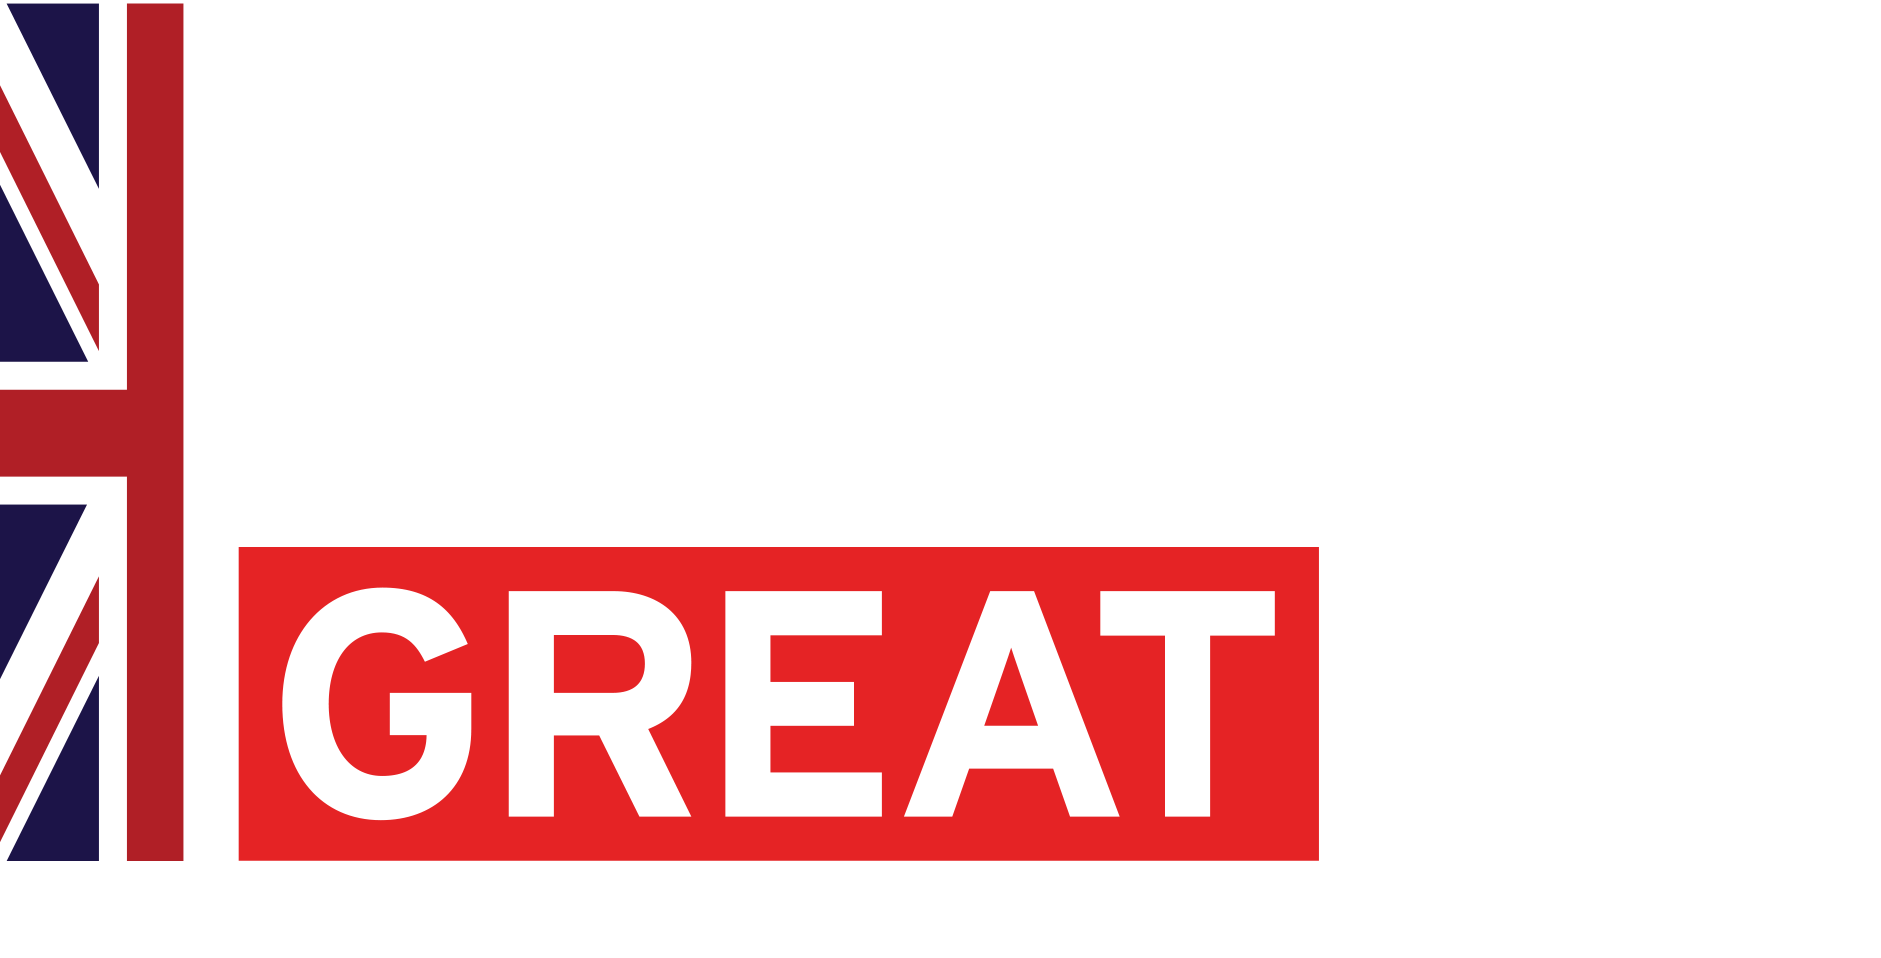 Proud to support - Exporting is great